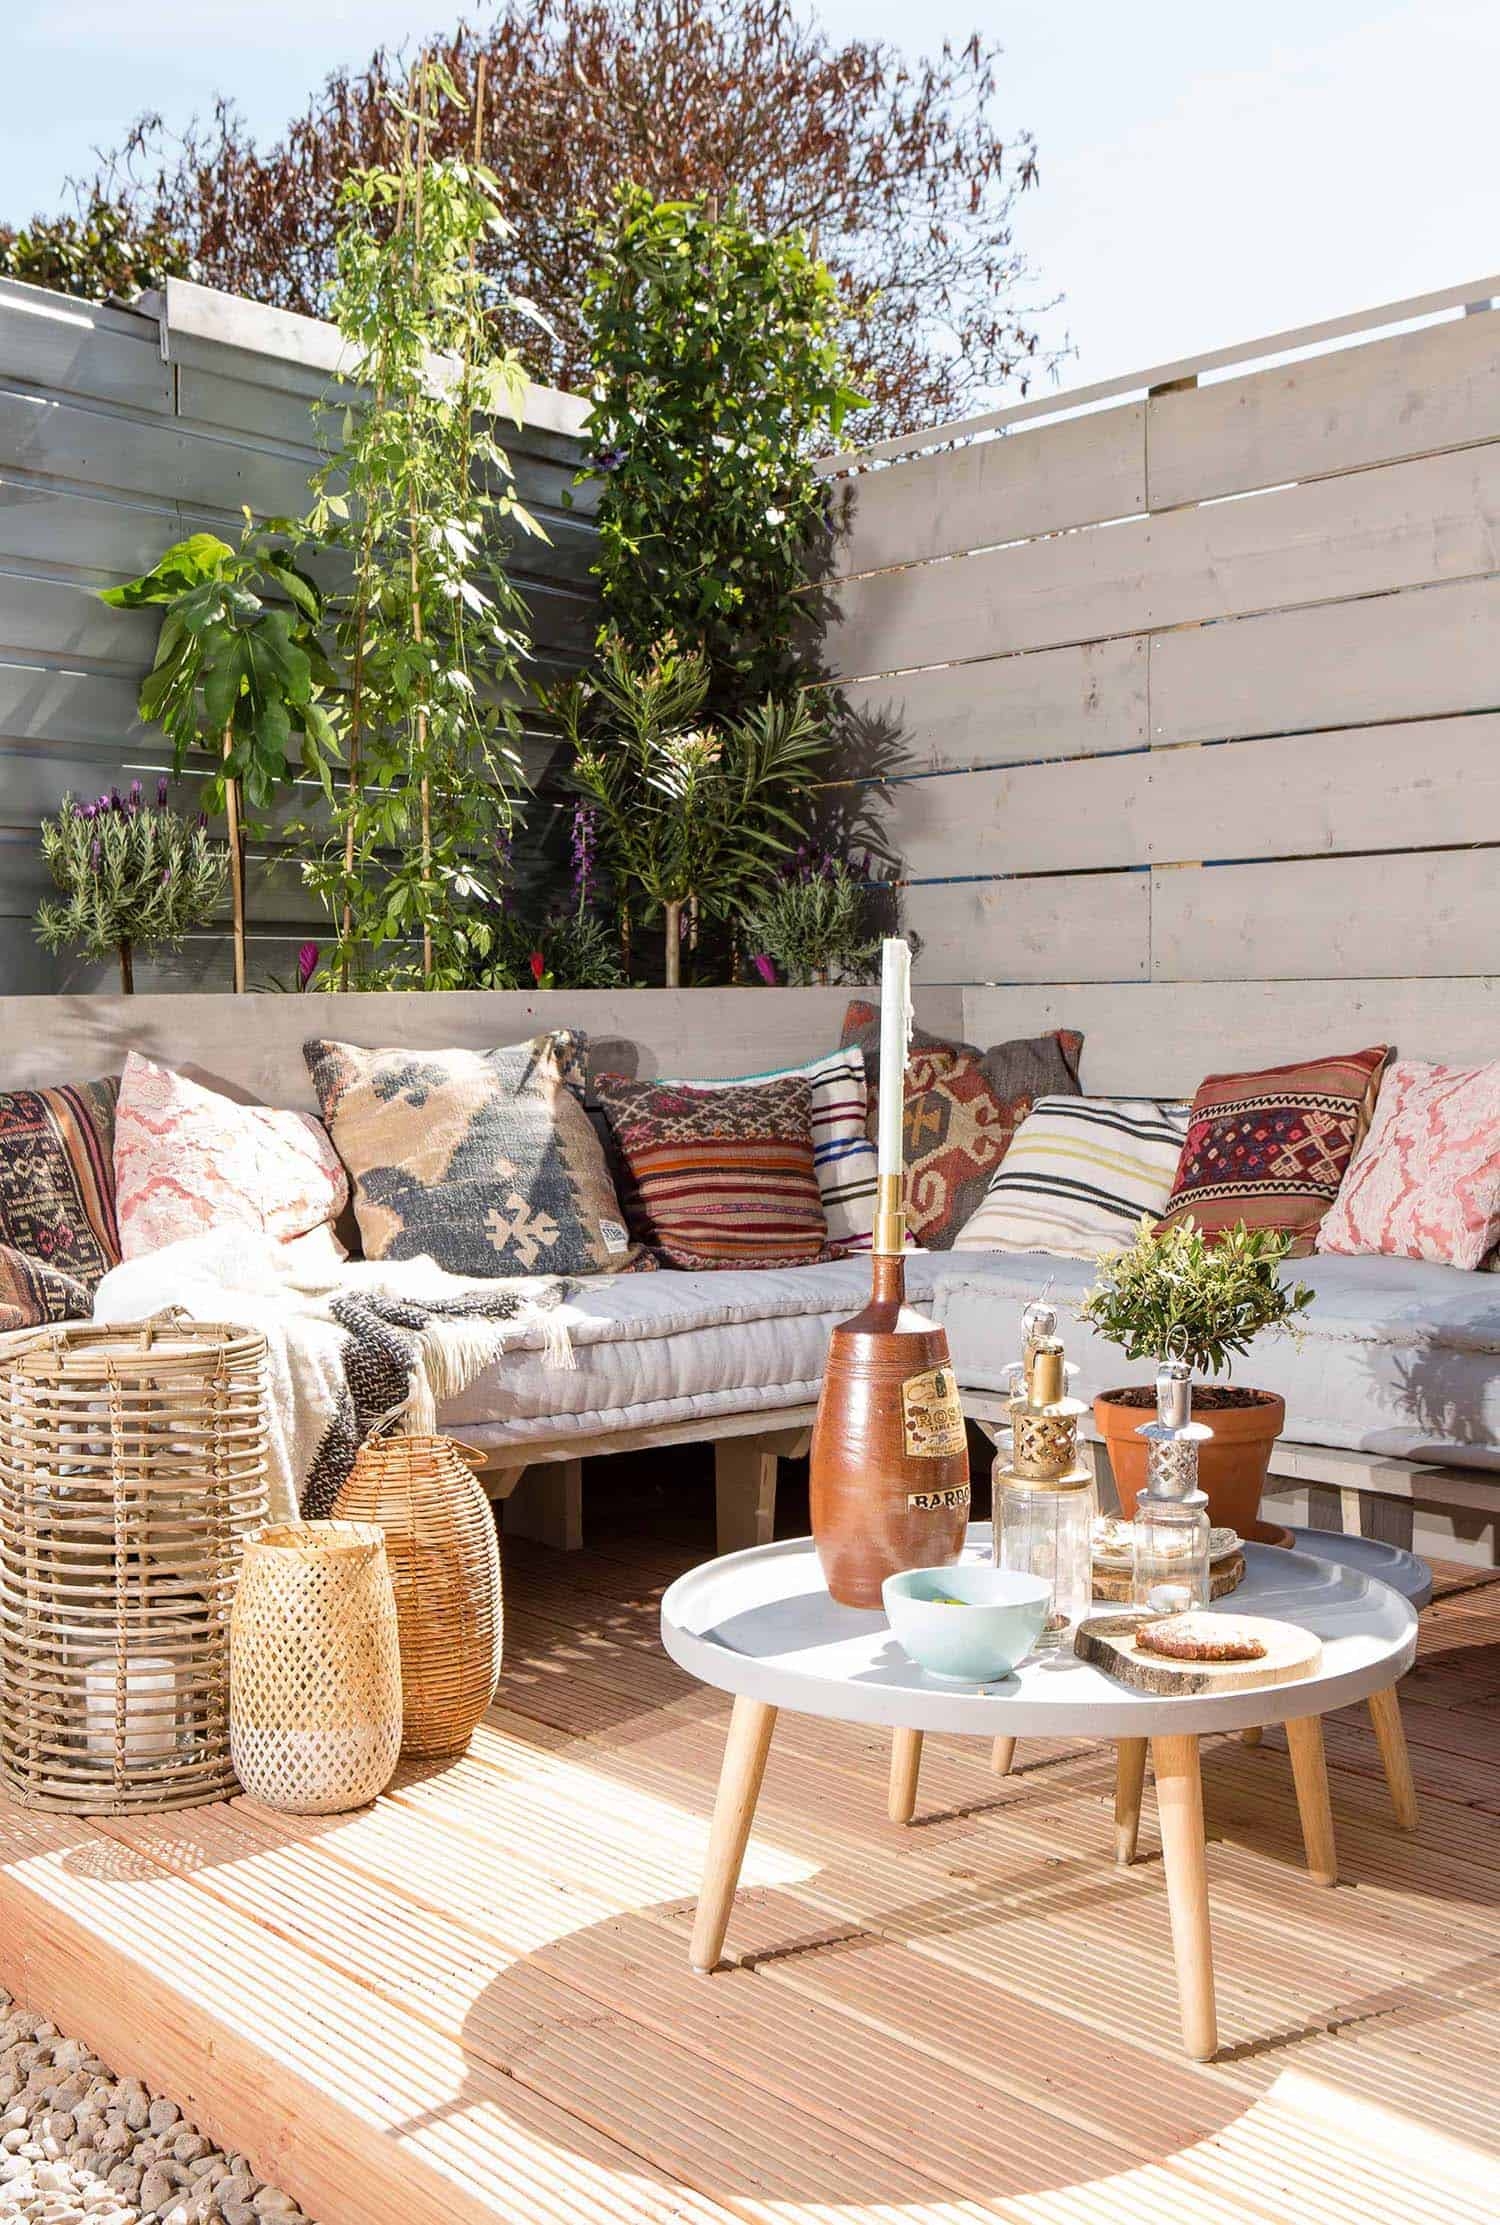 Bohemian Garden Design Ideas-10-1 Kindesign